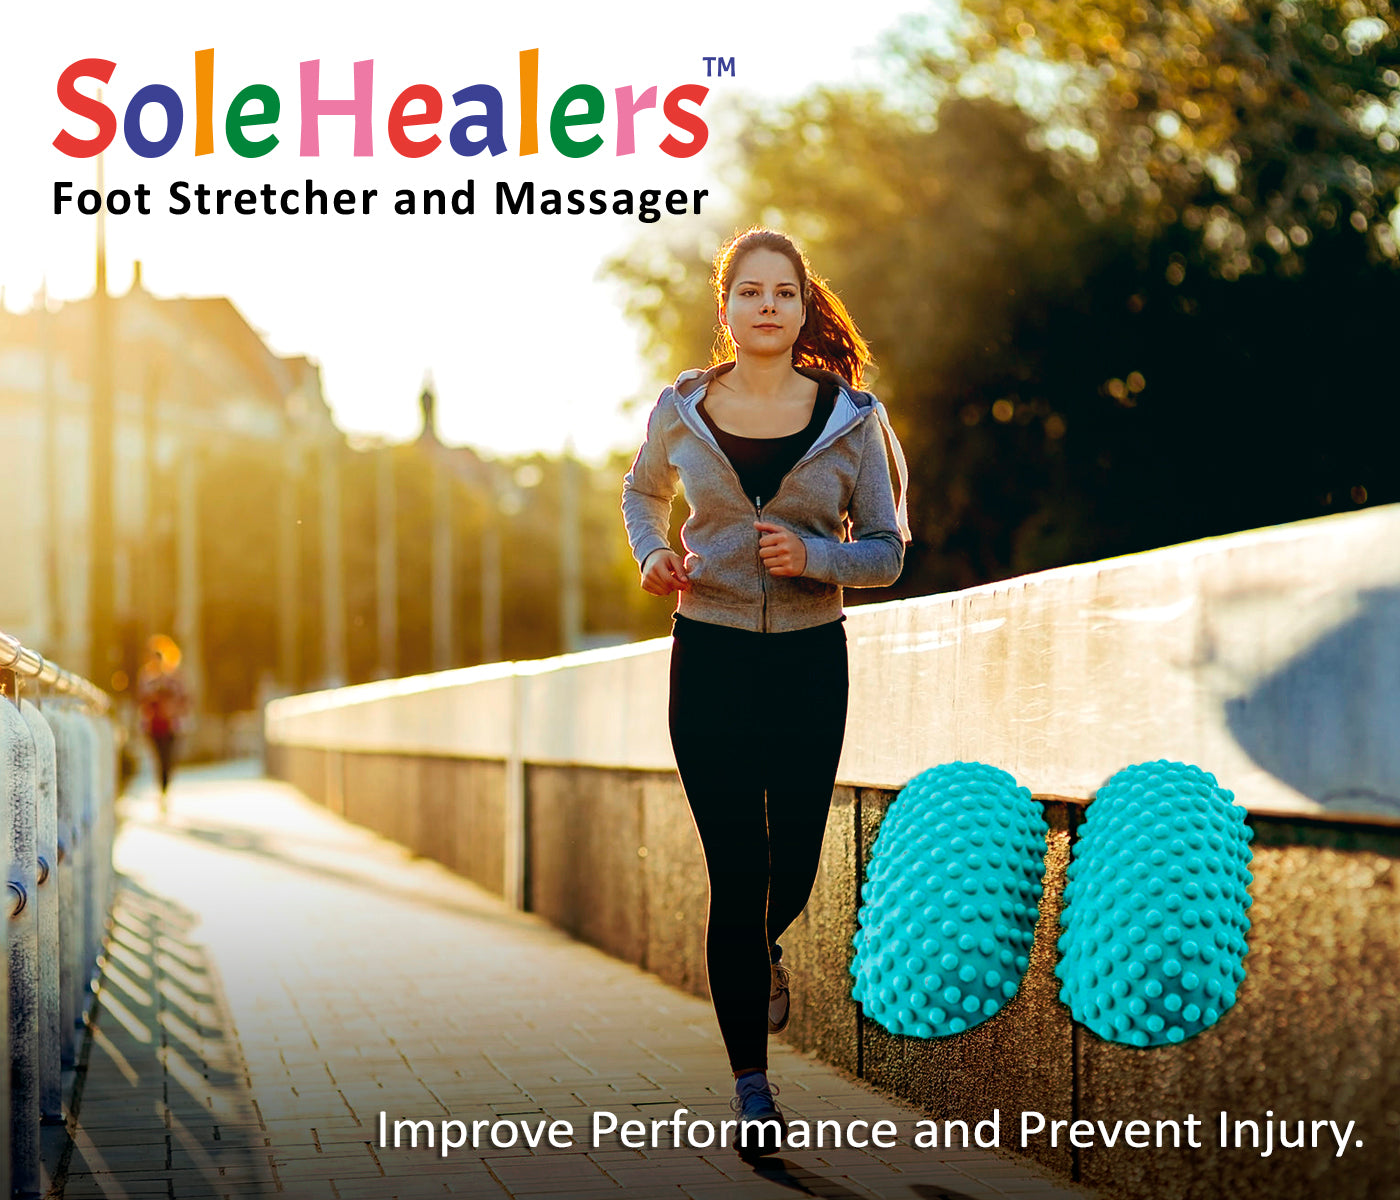 We Got Your Back | SoleHealers Foot Stretcher and Massager